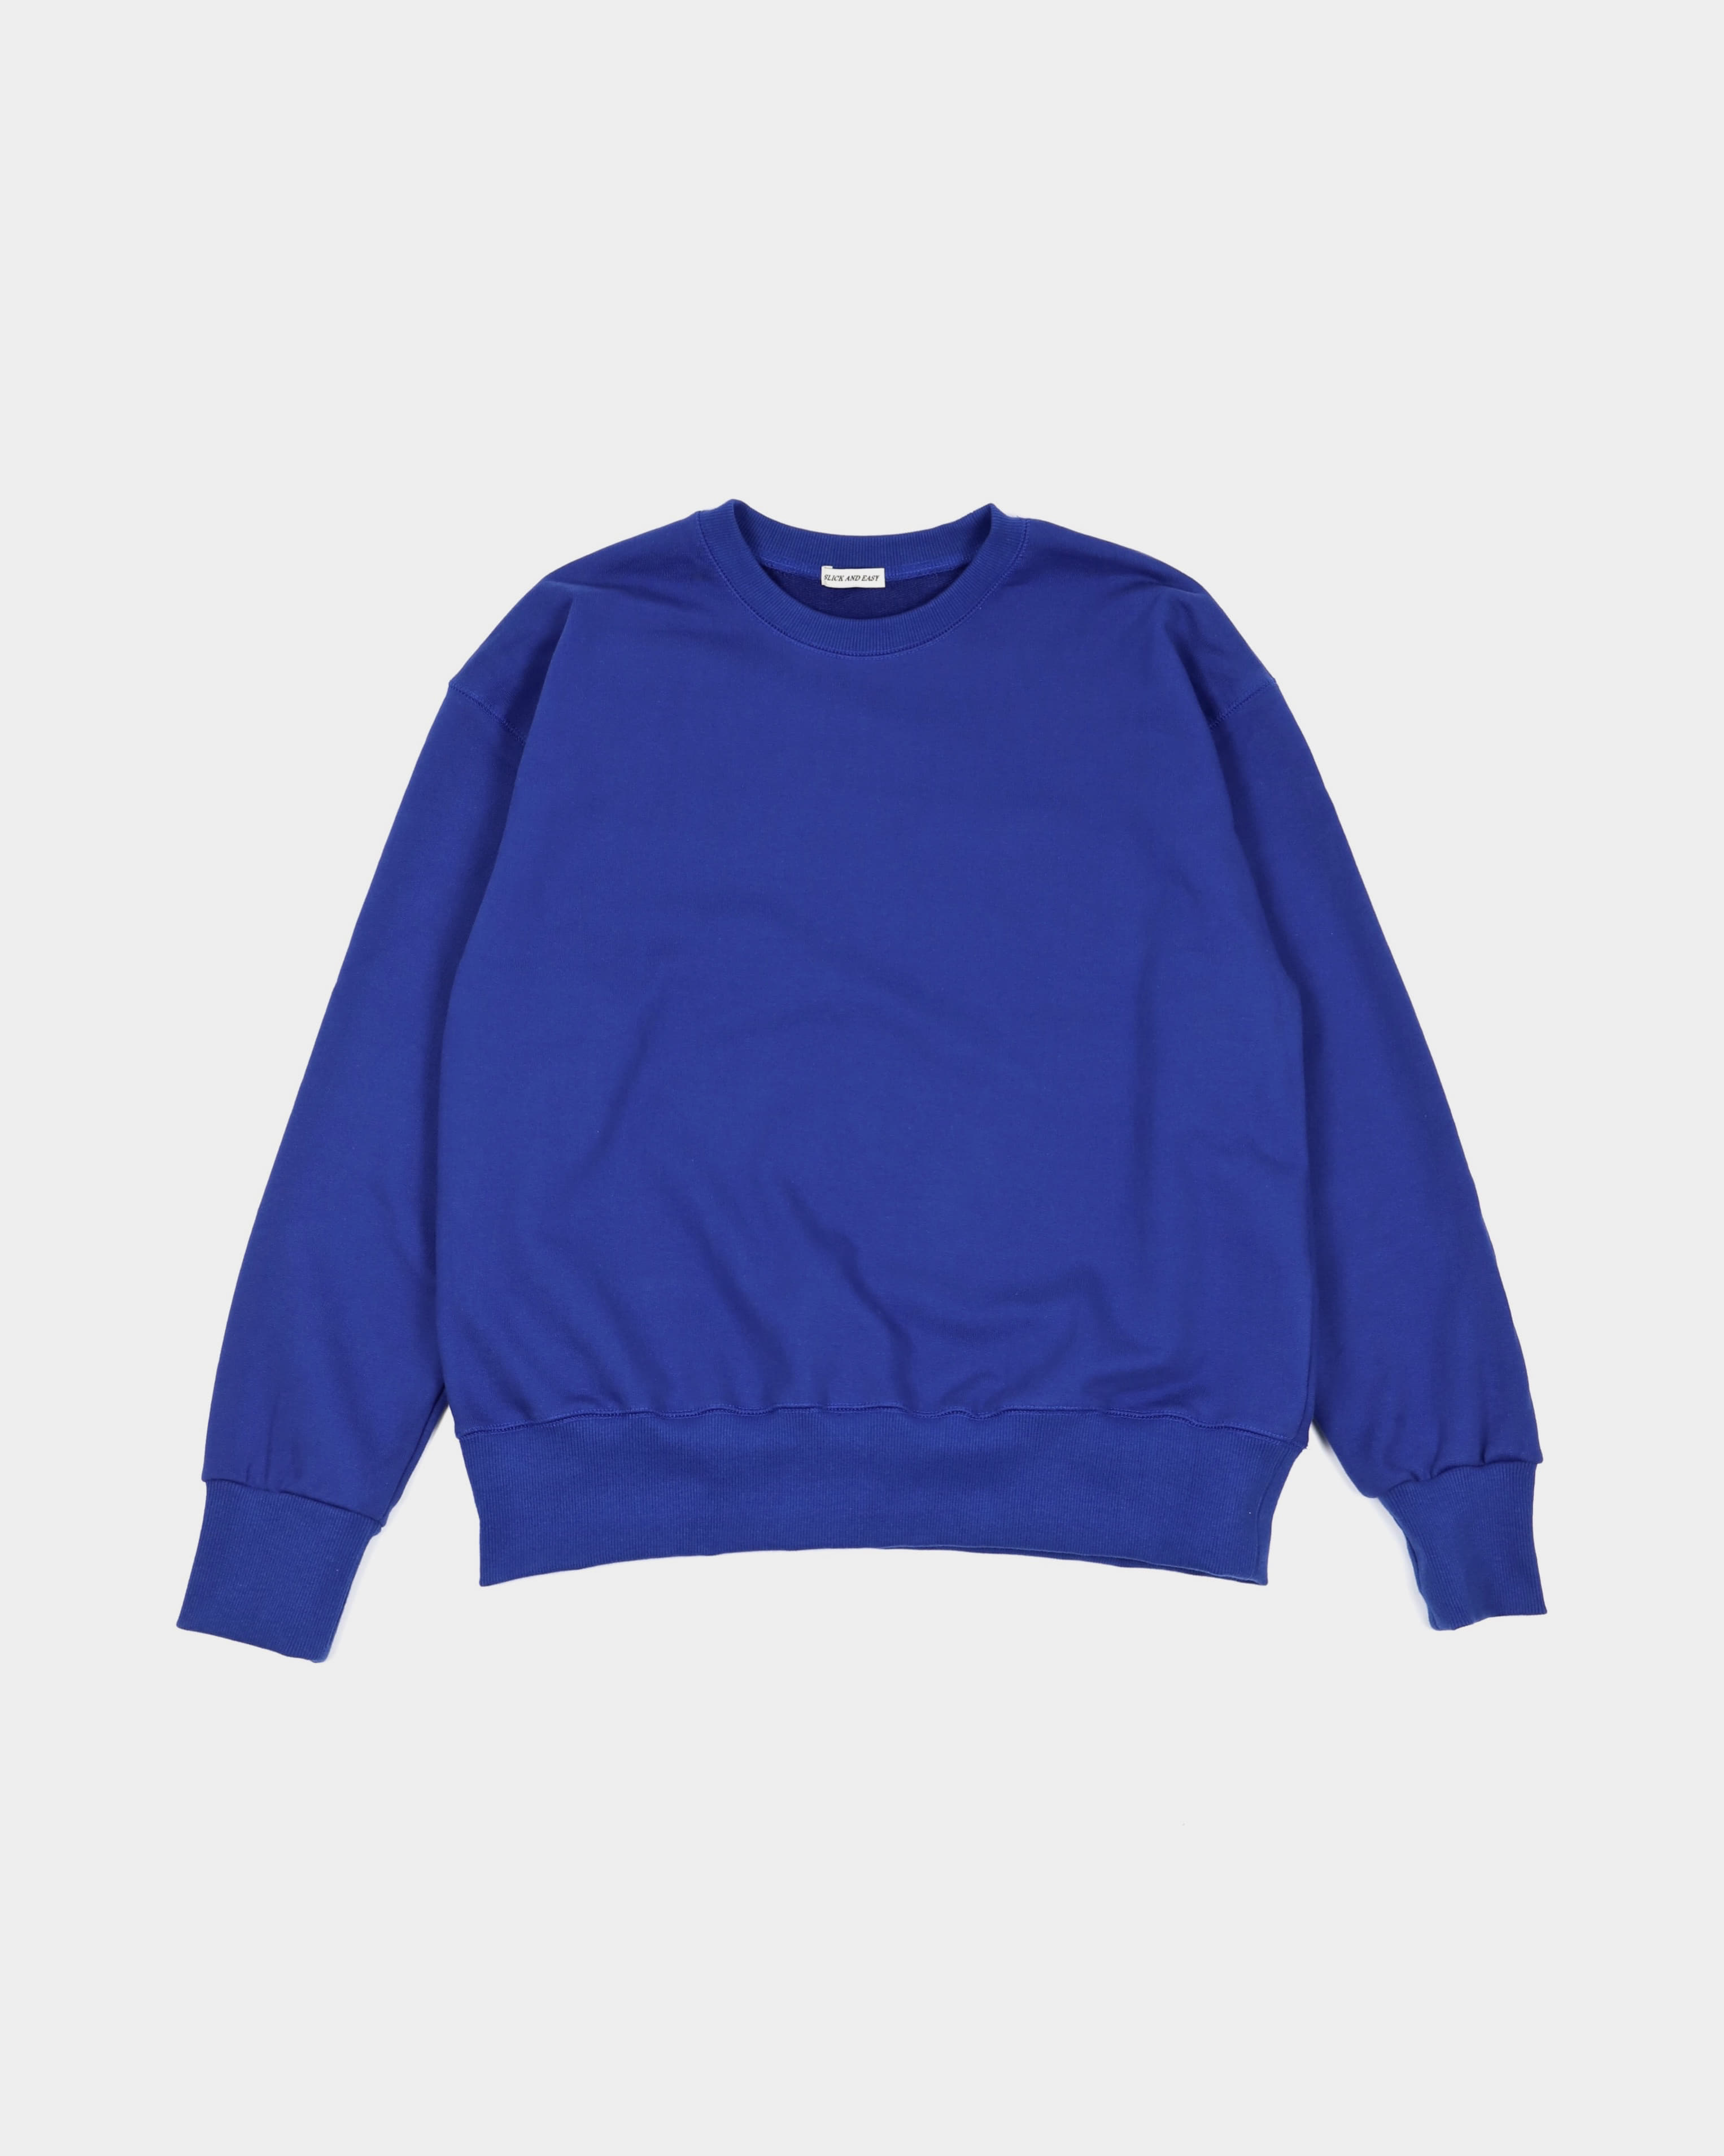 Tonki Sweatshirt Blue